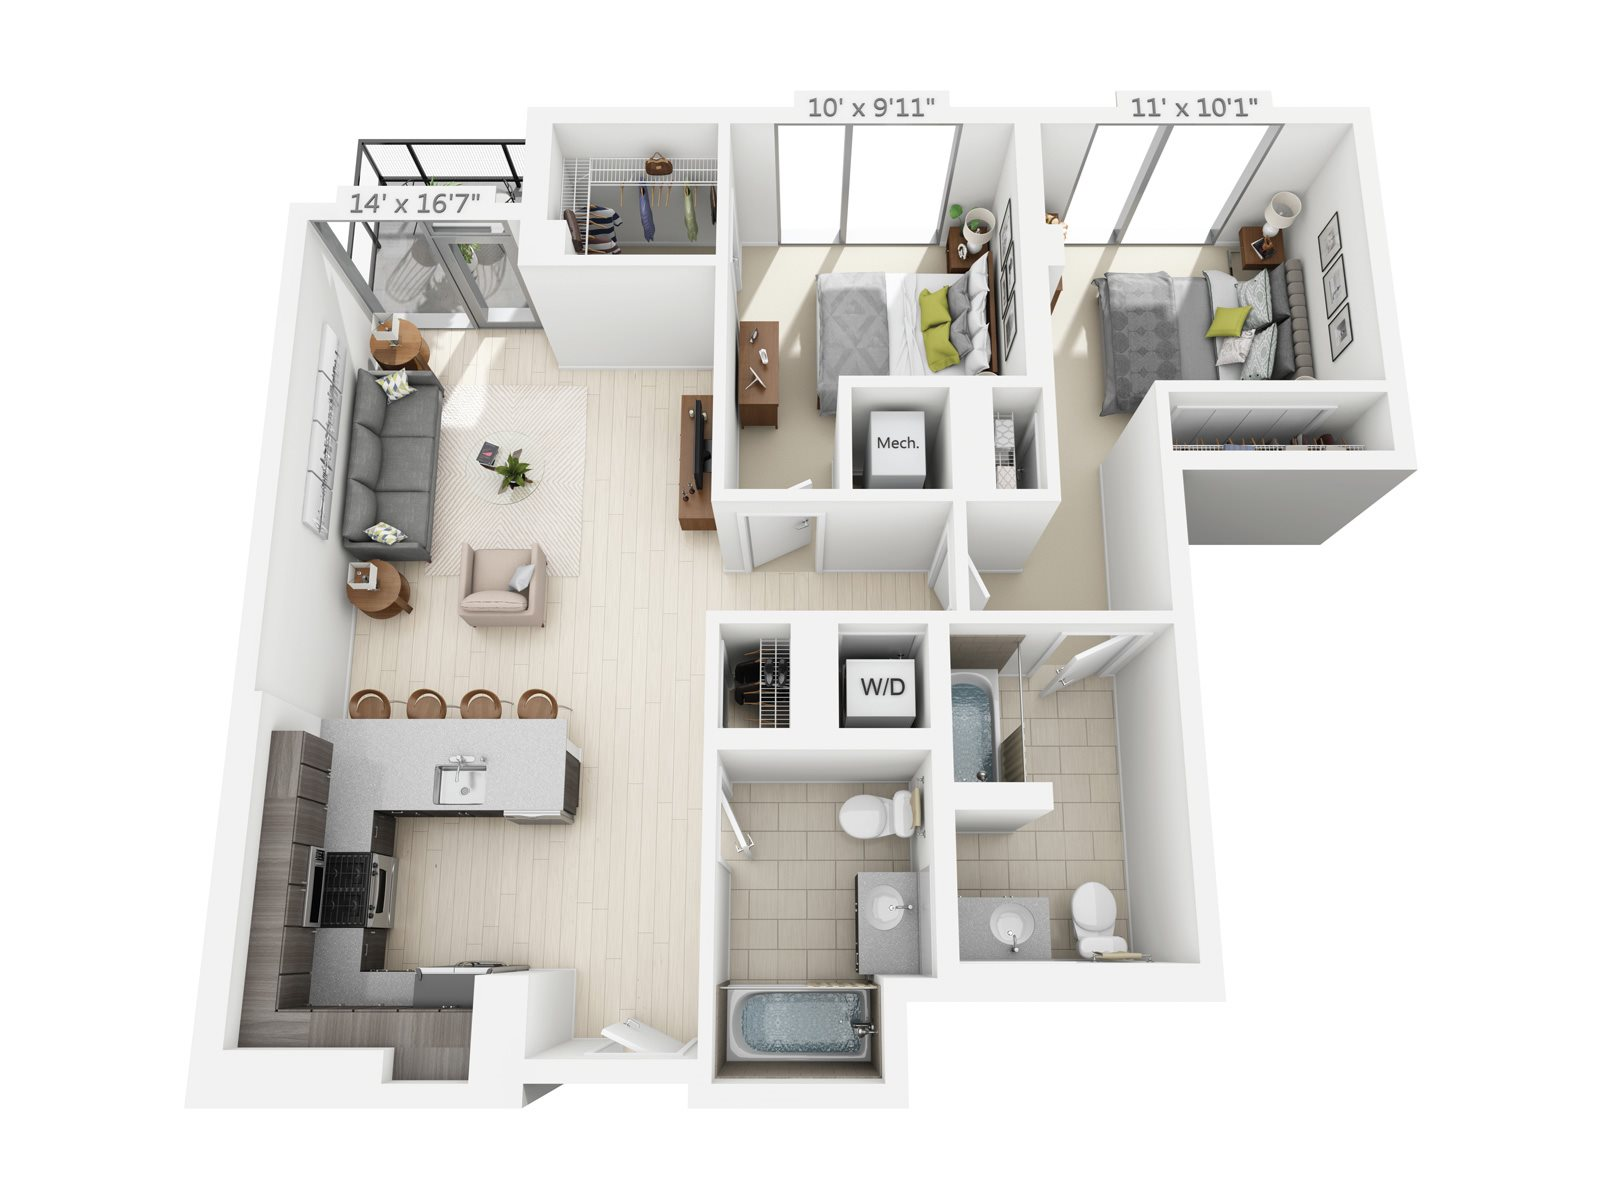 2 BEDROOM/2 BATH C5 Floor Plan 11